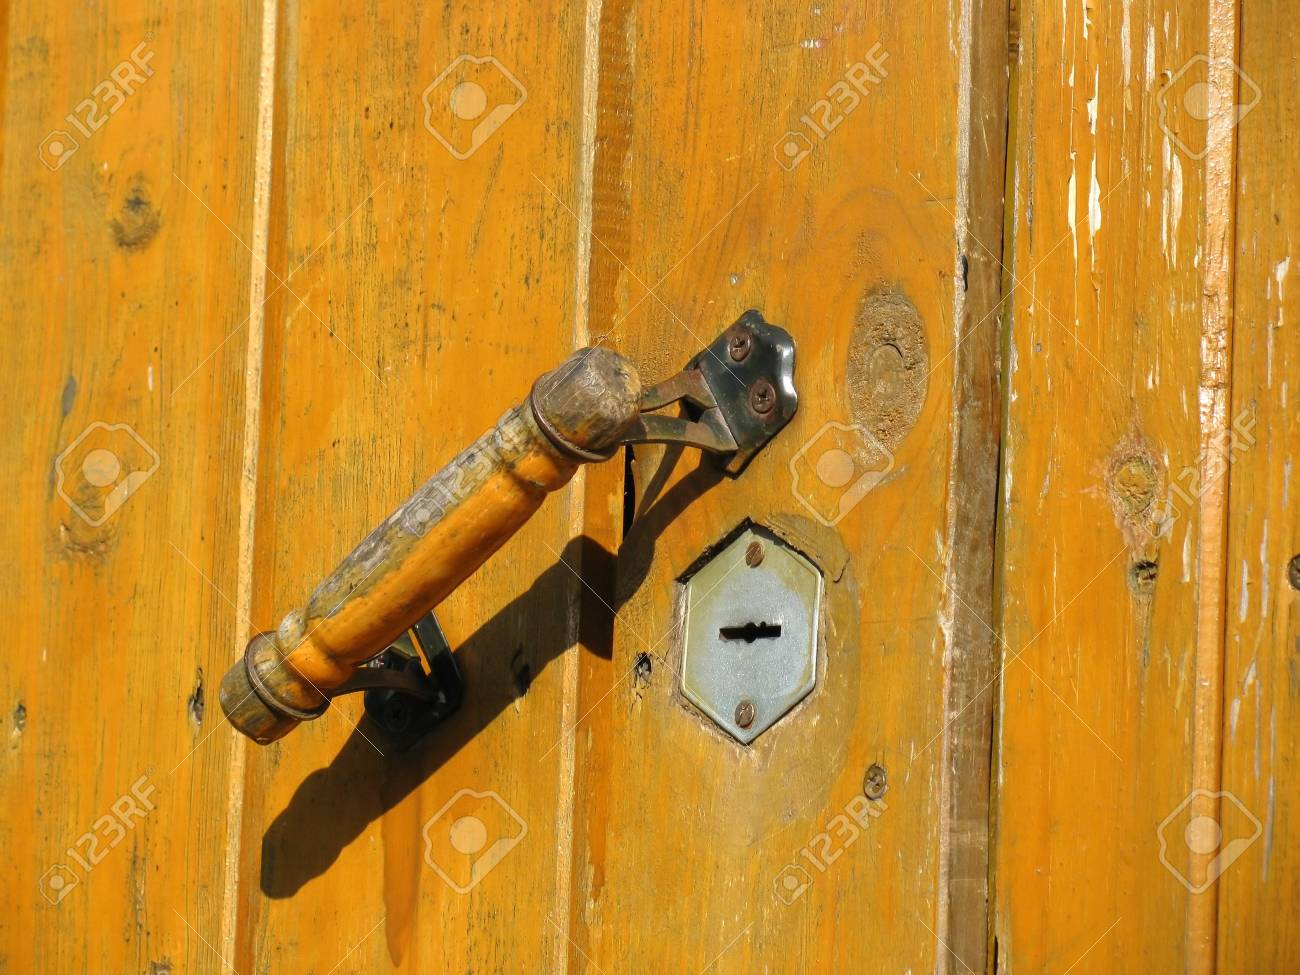 Old wooden weathered door with doorhandle and keyhole Stock Photo - 7195473